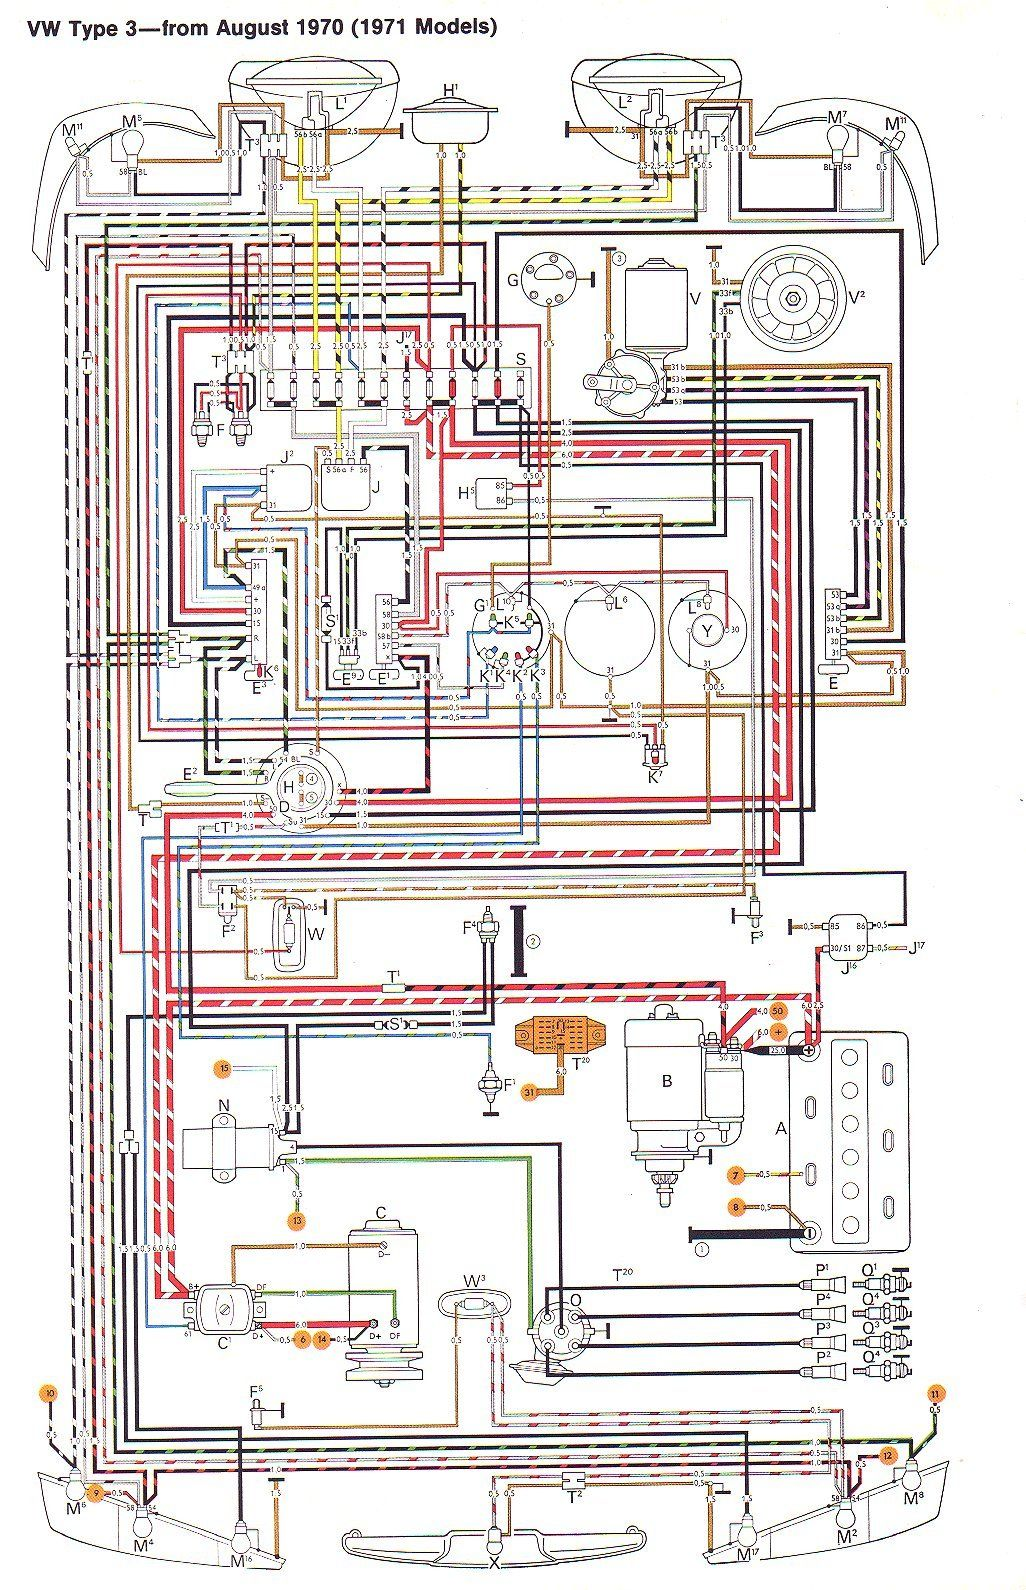 Ag Wiring Diagram Library Pin Pa System Setup On Pinterest 71 Vw T3 Mg Td Volkswagen And Engine